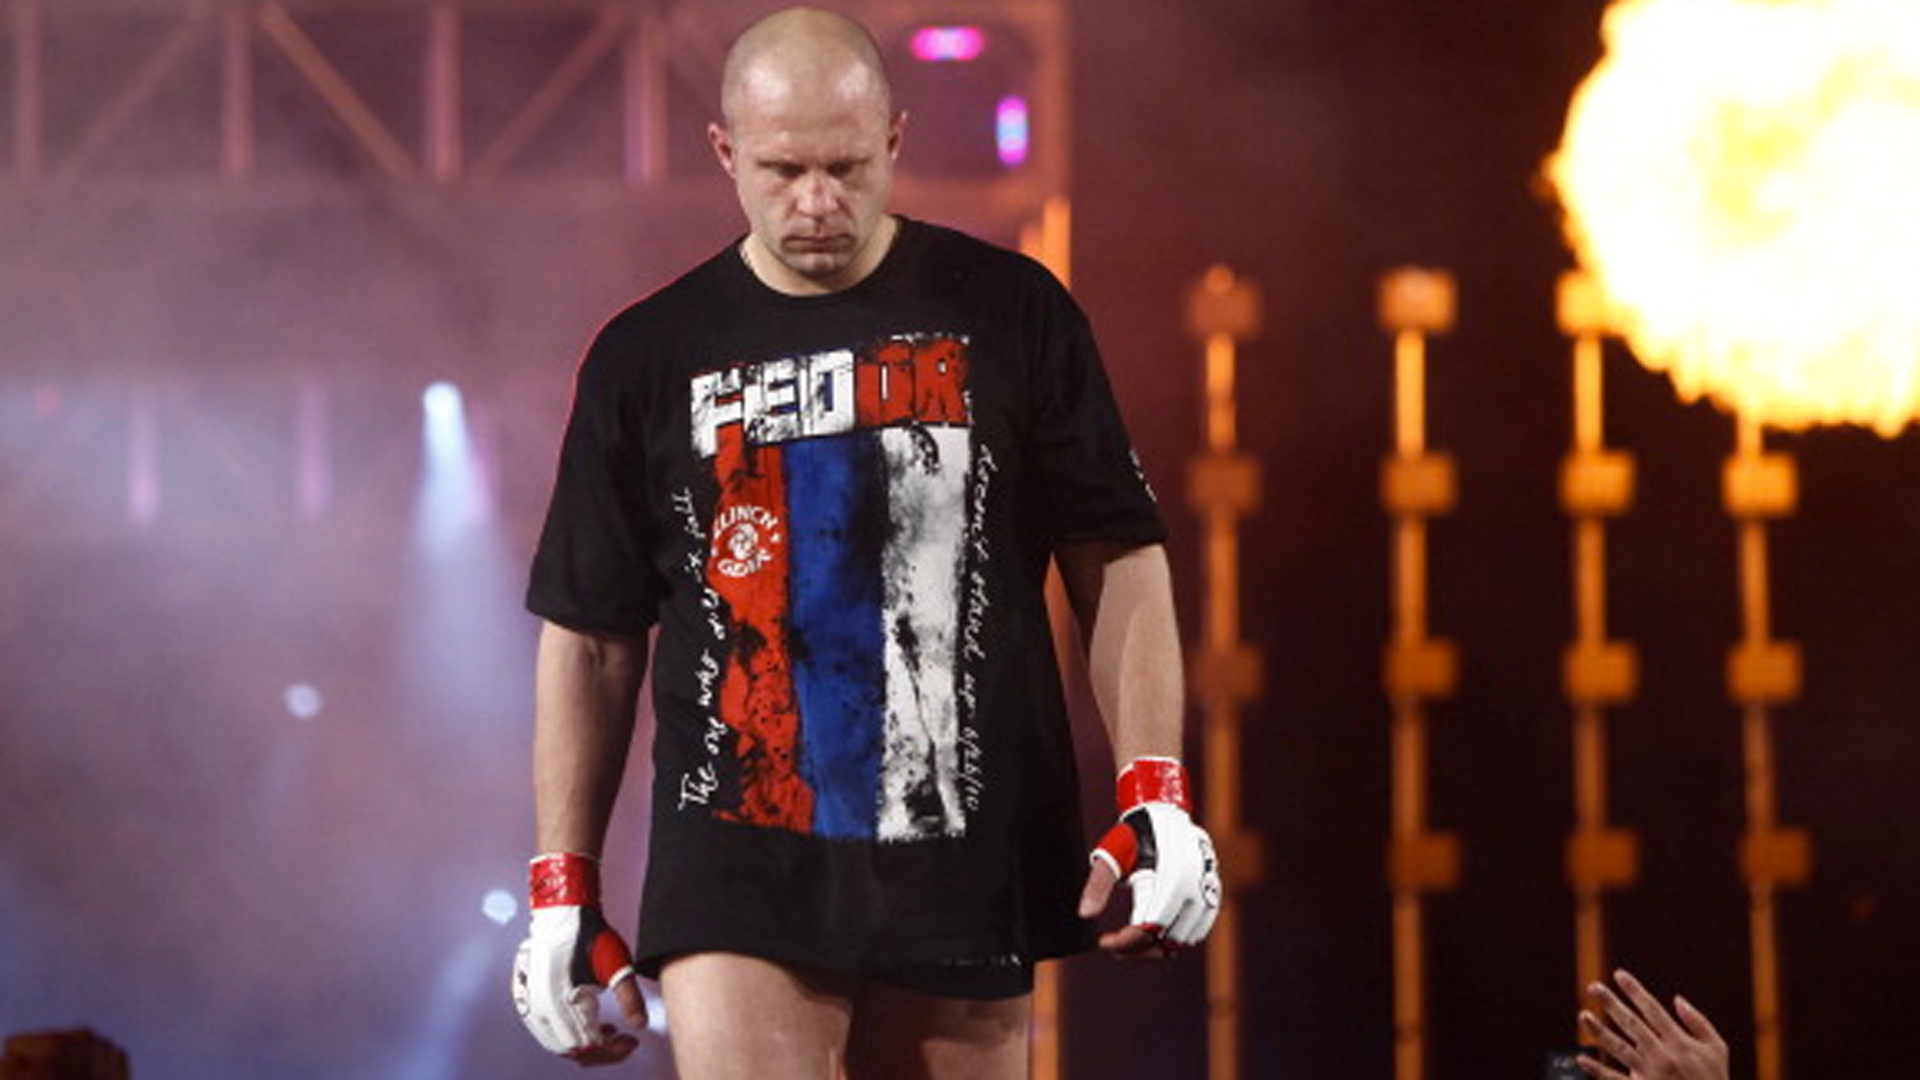 Bellator 198 Results: Fedor Emelianenko Knocks Frank Mir Out